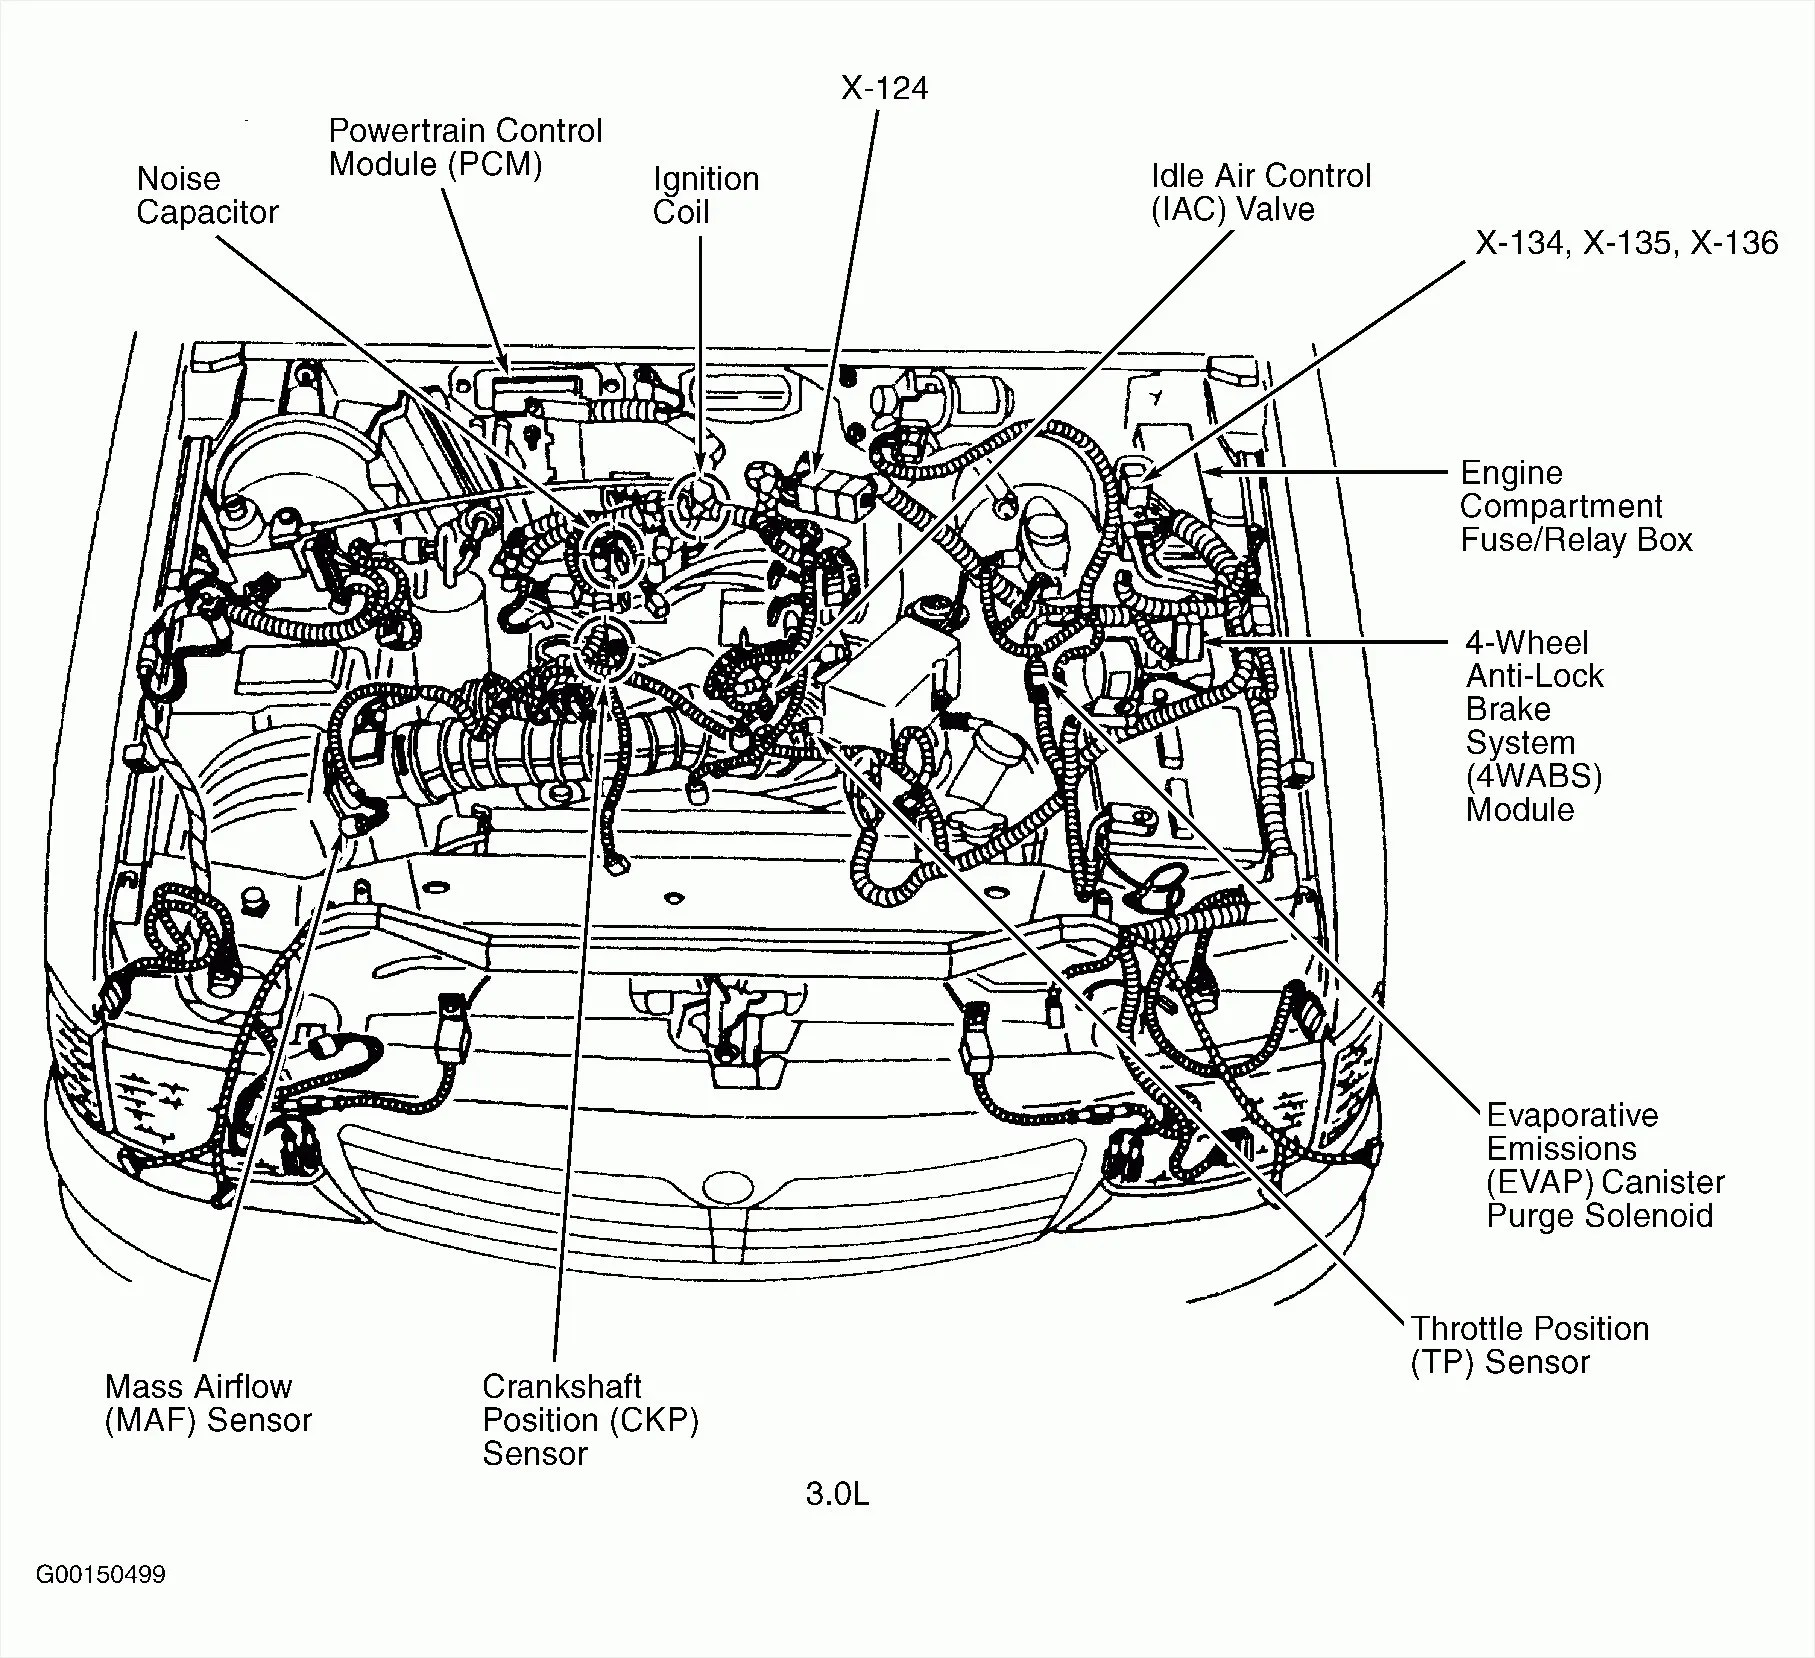 hight resolution of 2010 equinox engine diagram wiring diagram technic 2005 chevy equinox engine diagram chevy s10 2 2